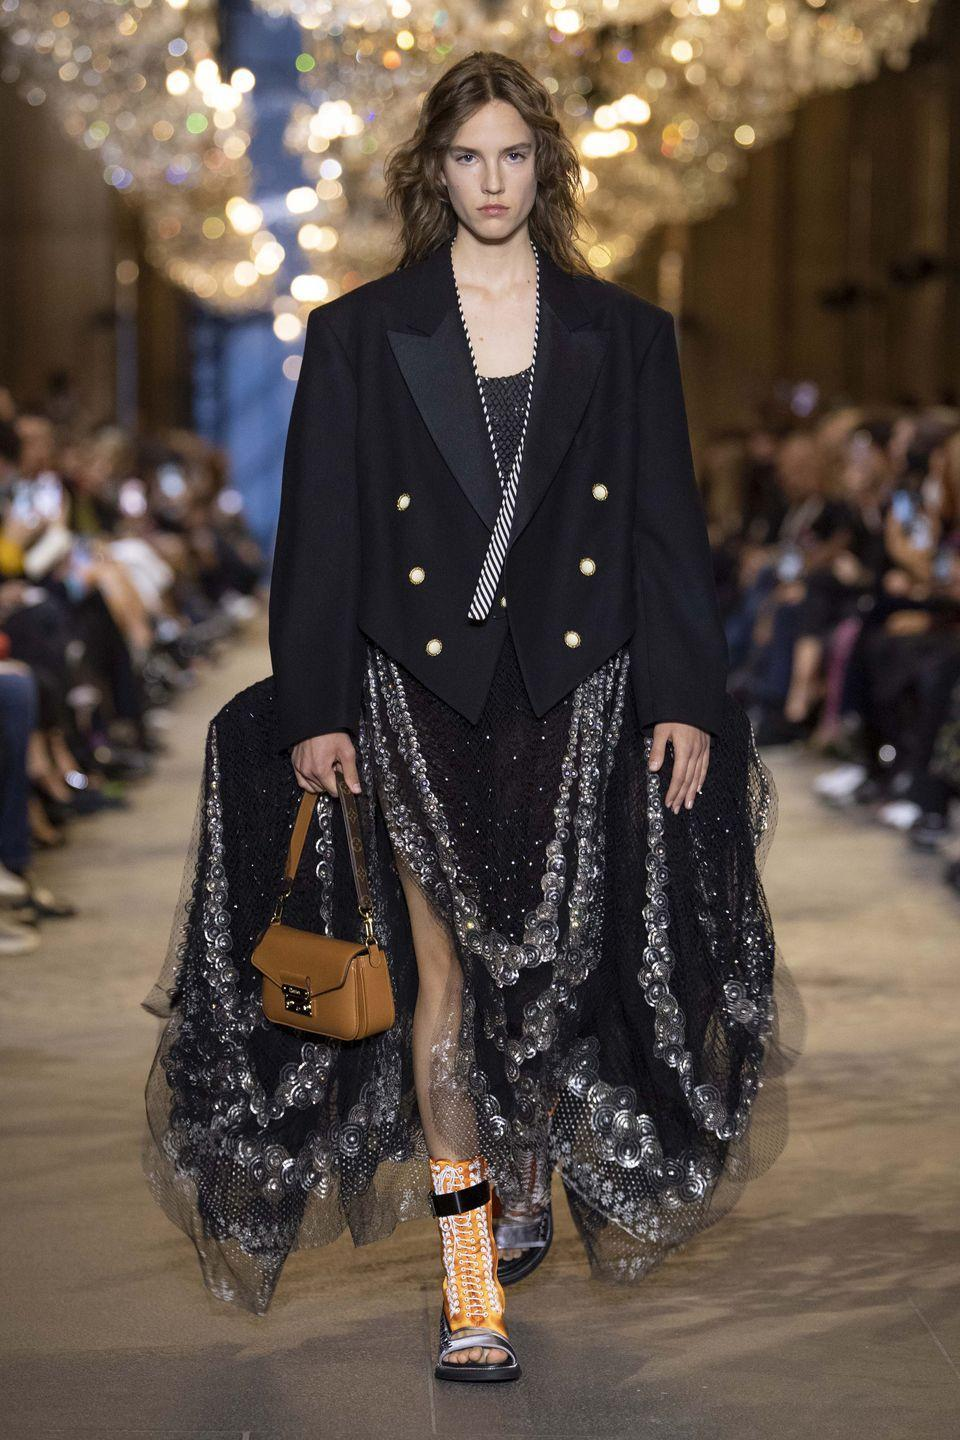 """<p>Nicolas Ghesquière described the spring/summer 2022 collection as """"le grand bal of Time"""", celebrating opulence with a fairytale collection which nodded to the house's history but with the relaxed touches that the creative director has become known for. Louis Vuitton is currently celebrating what would have been its founder's 200th birthday, so it was certainly a fitting mood – and a beautiful end to the first real-life Paris Fashion Week we've been treated to in a few years.</p>"""